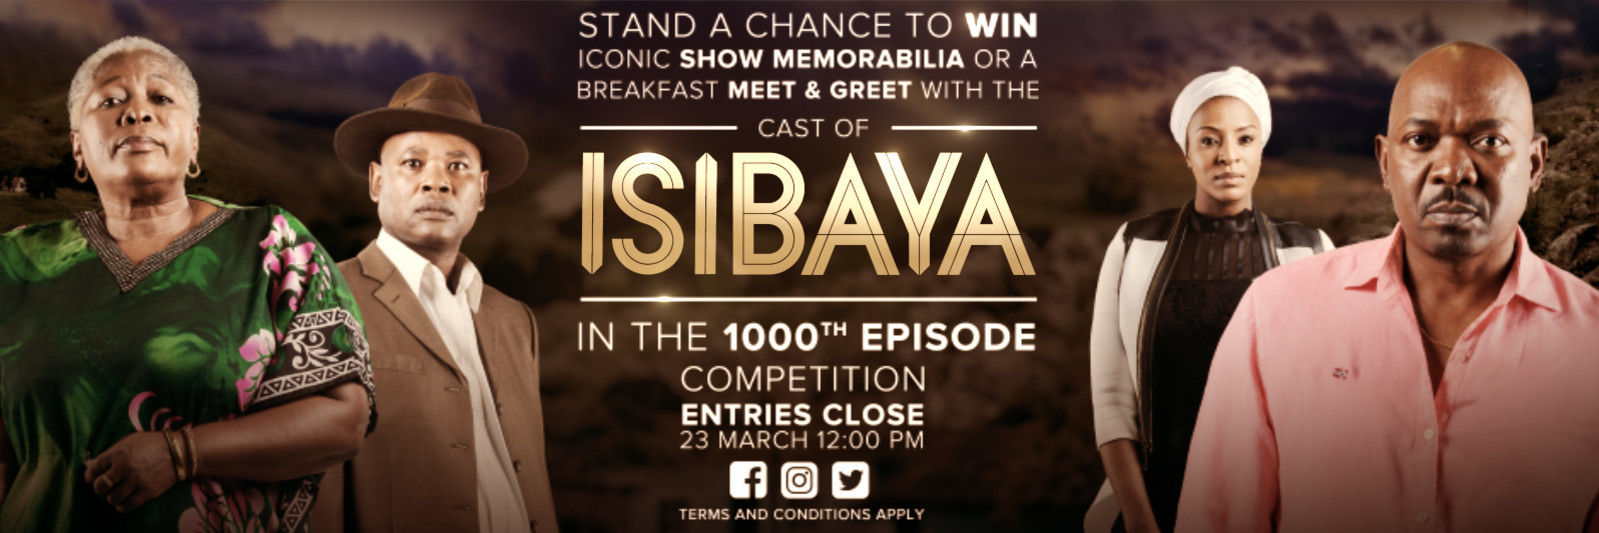 27 mm website header 1000th ep isibaya v004 014 pre